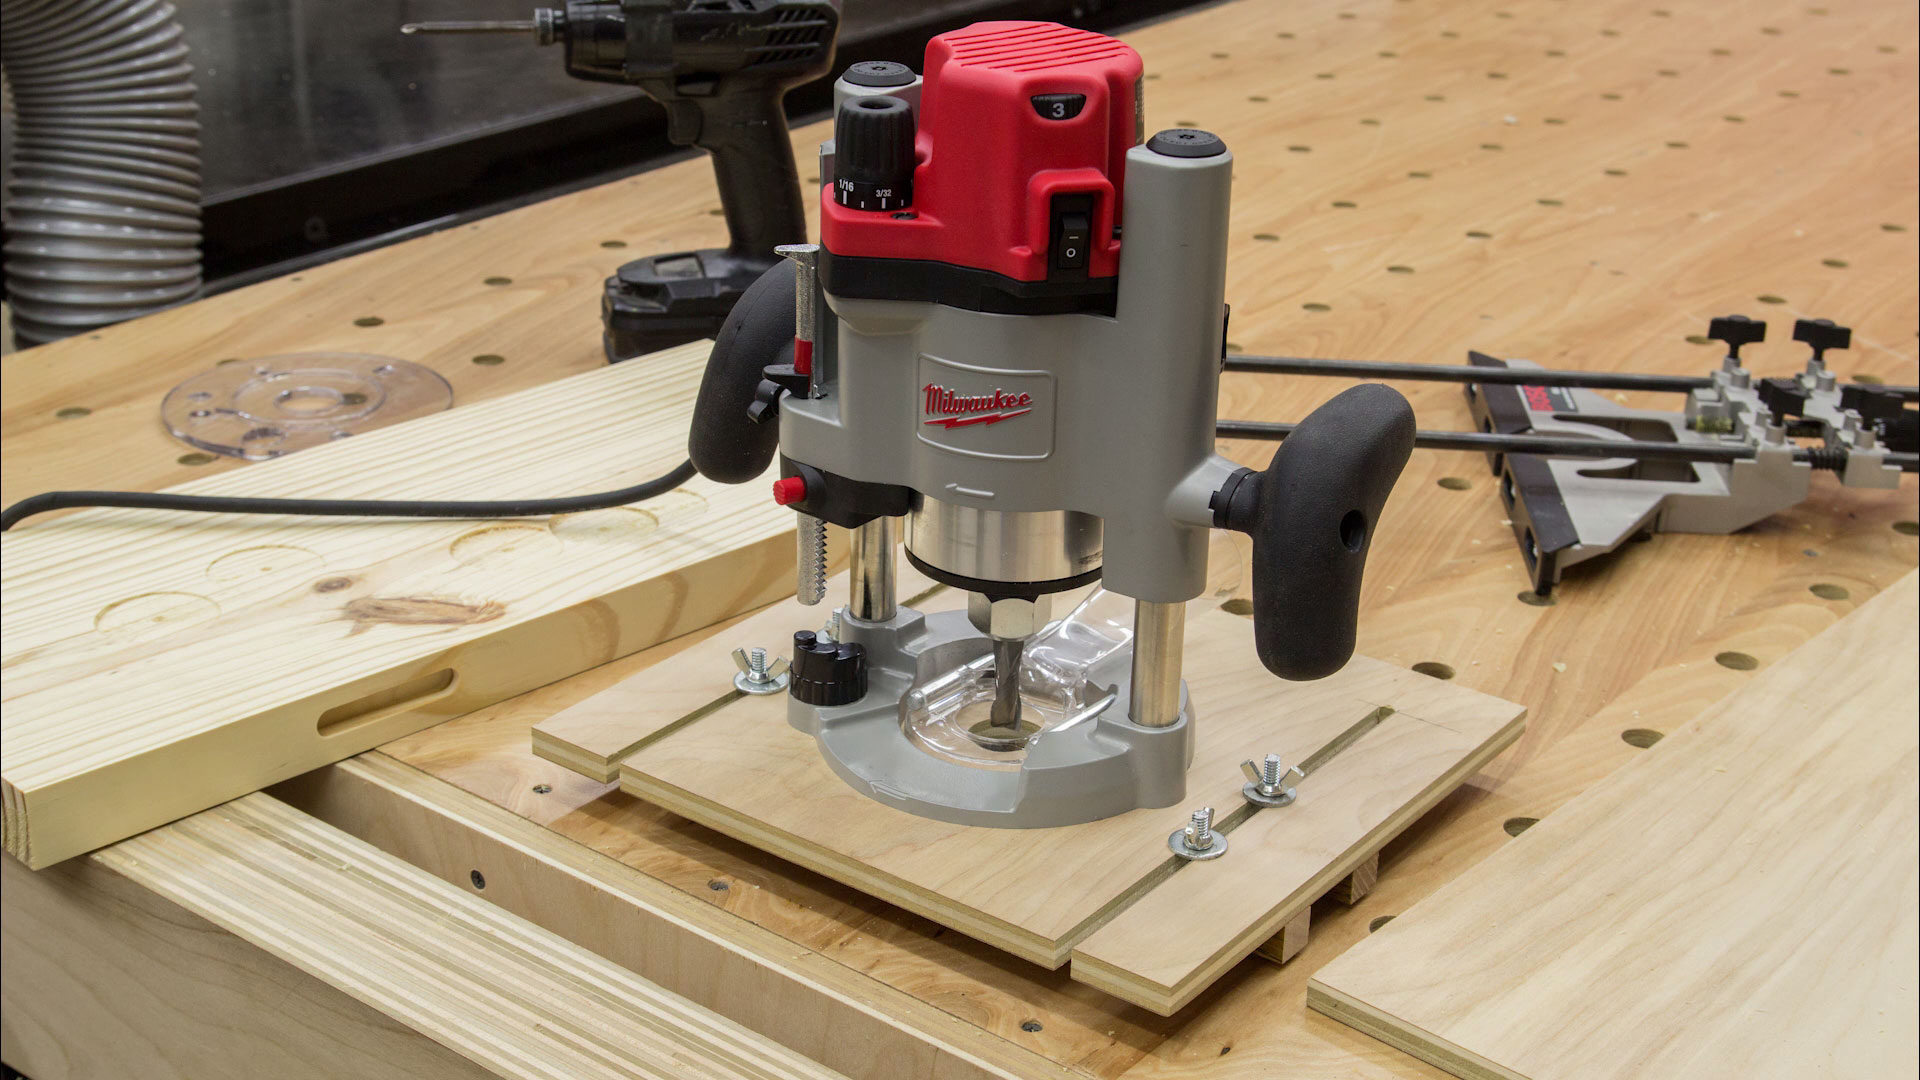 Making a trim router edge guide jig (palm router edge guide) youtube.